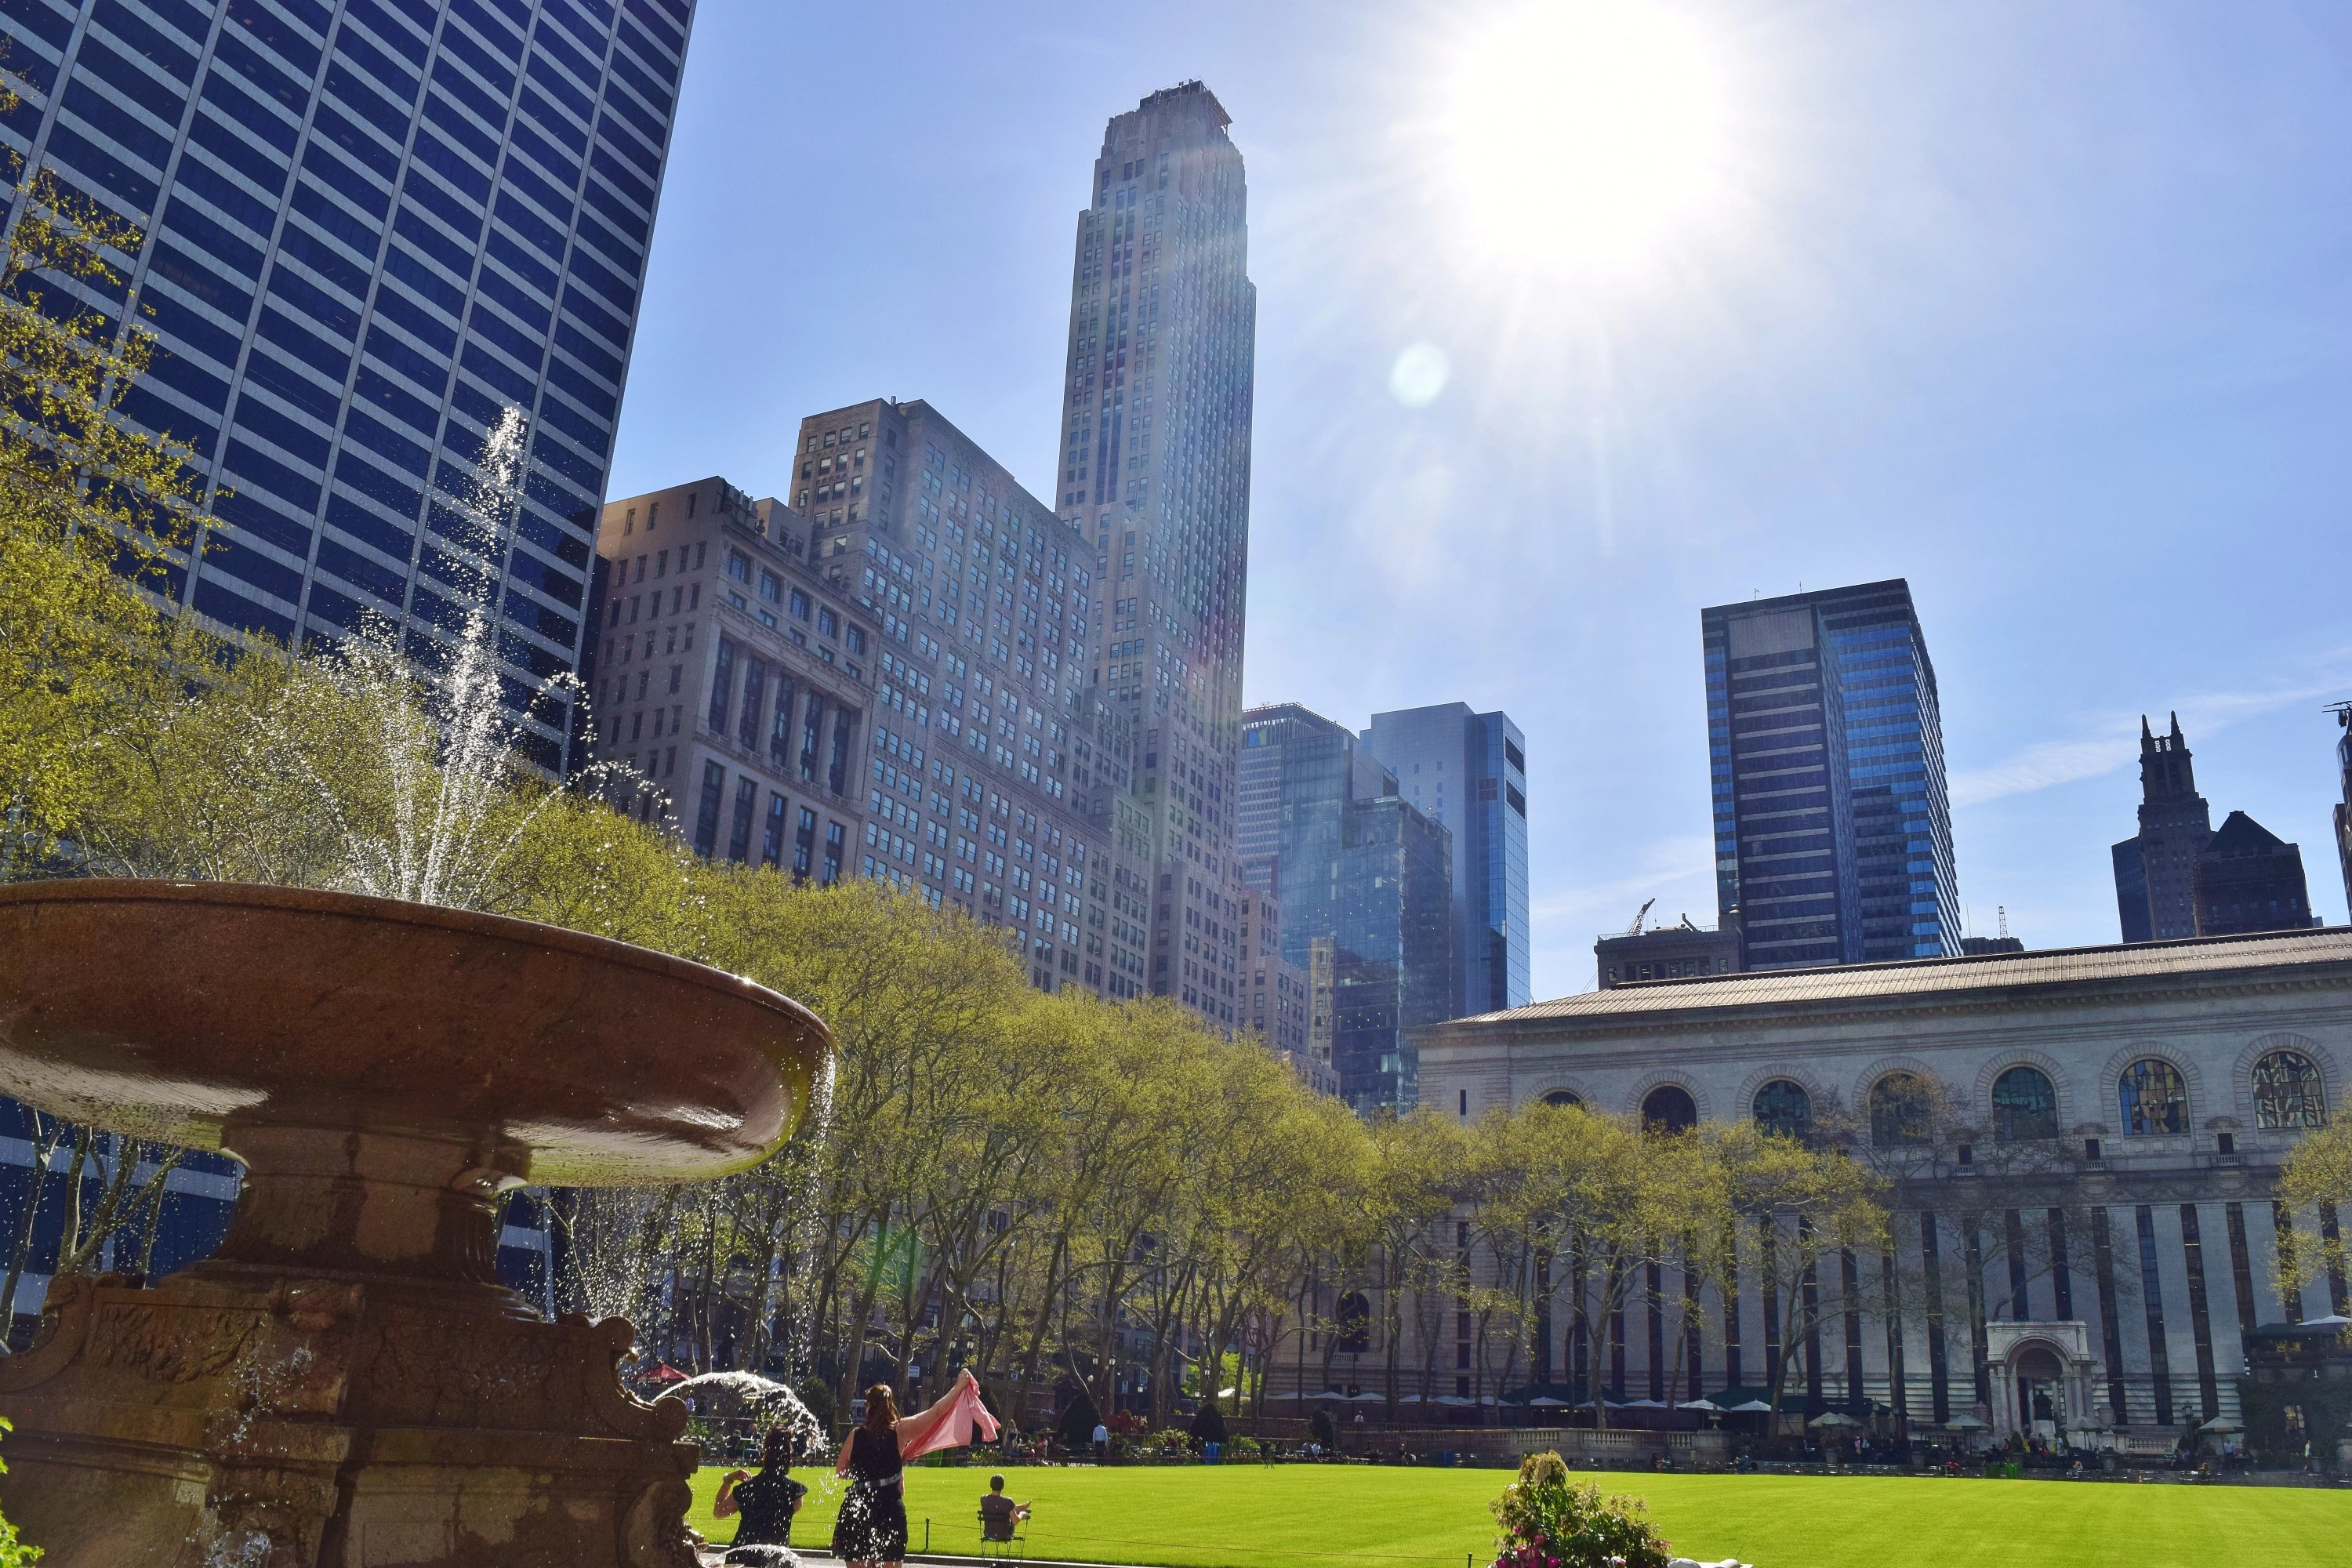 A shot of Bryant Park on a sunny day.